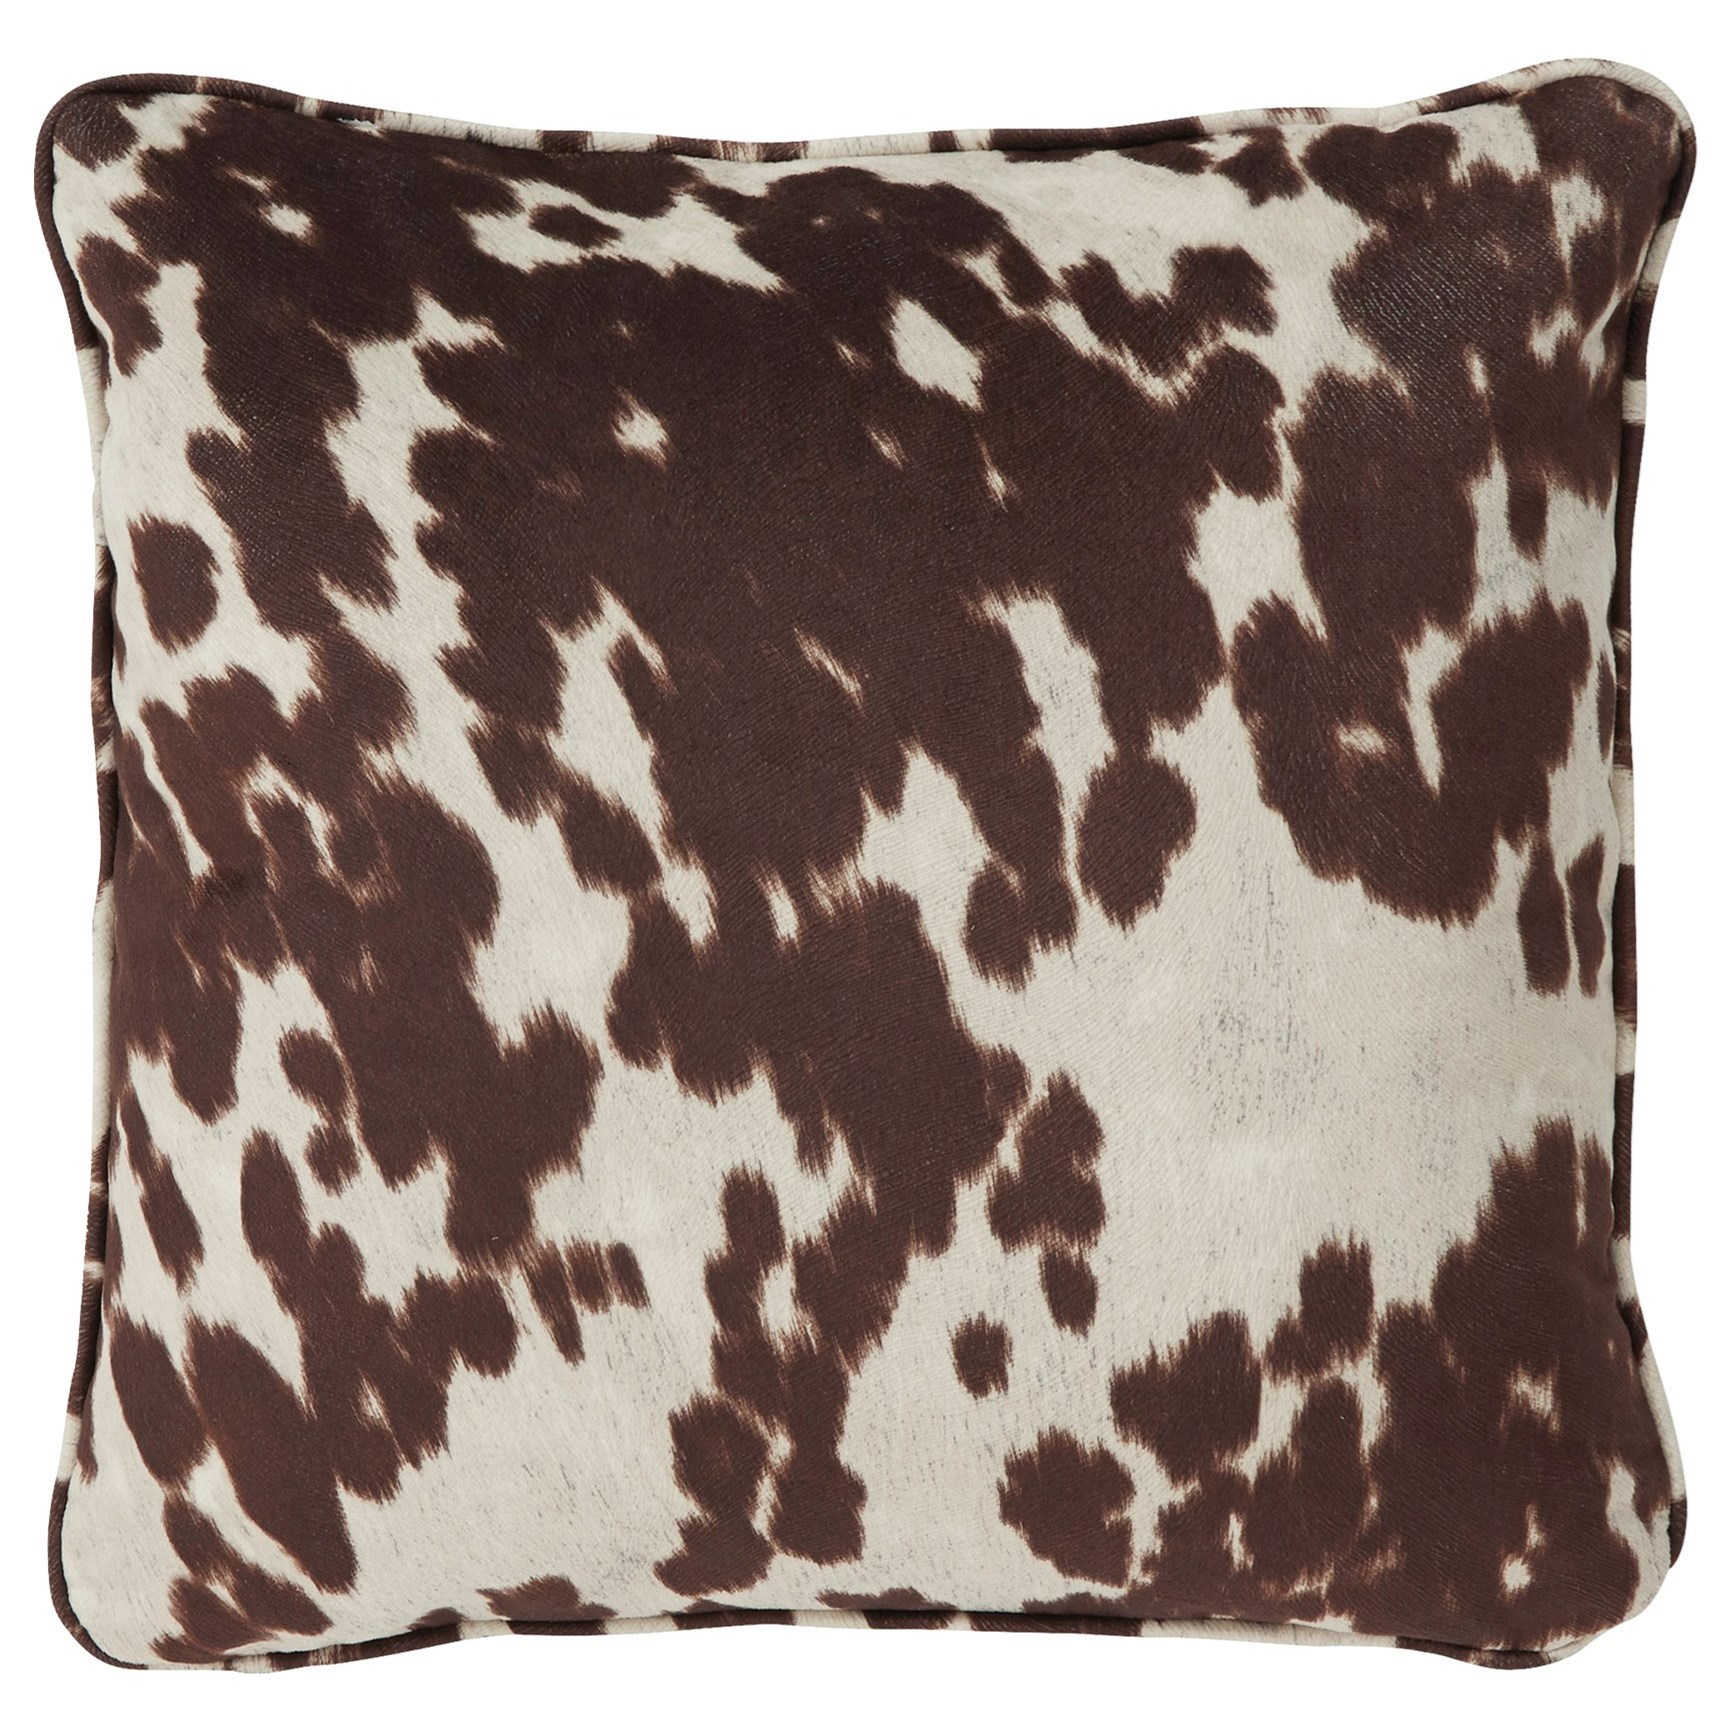 Signature Design by Ashley Pillows Dagan Brown/White Pillow - Item Number: A1000413P